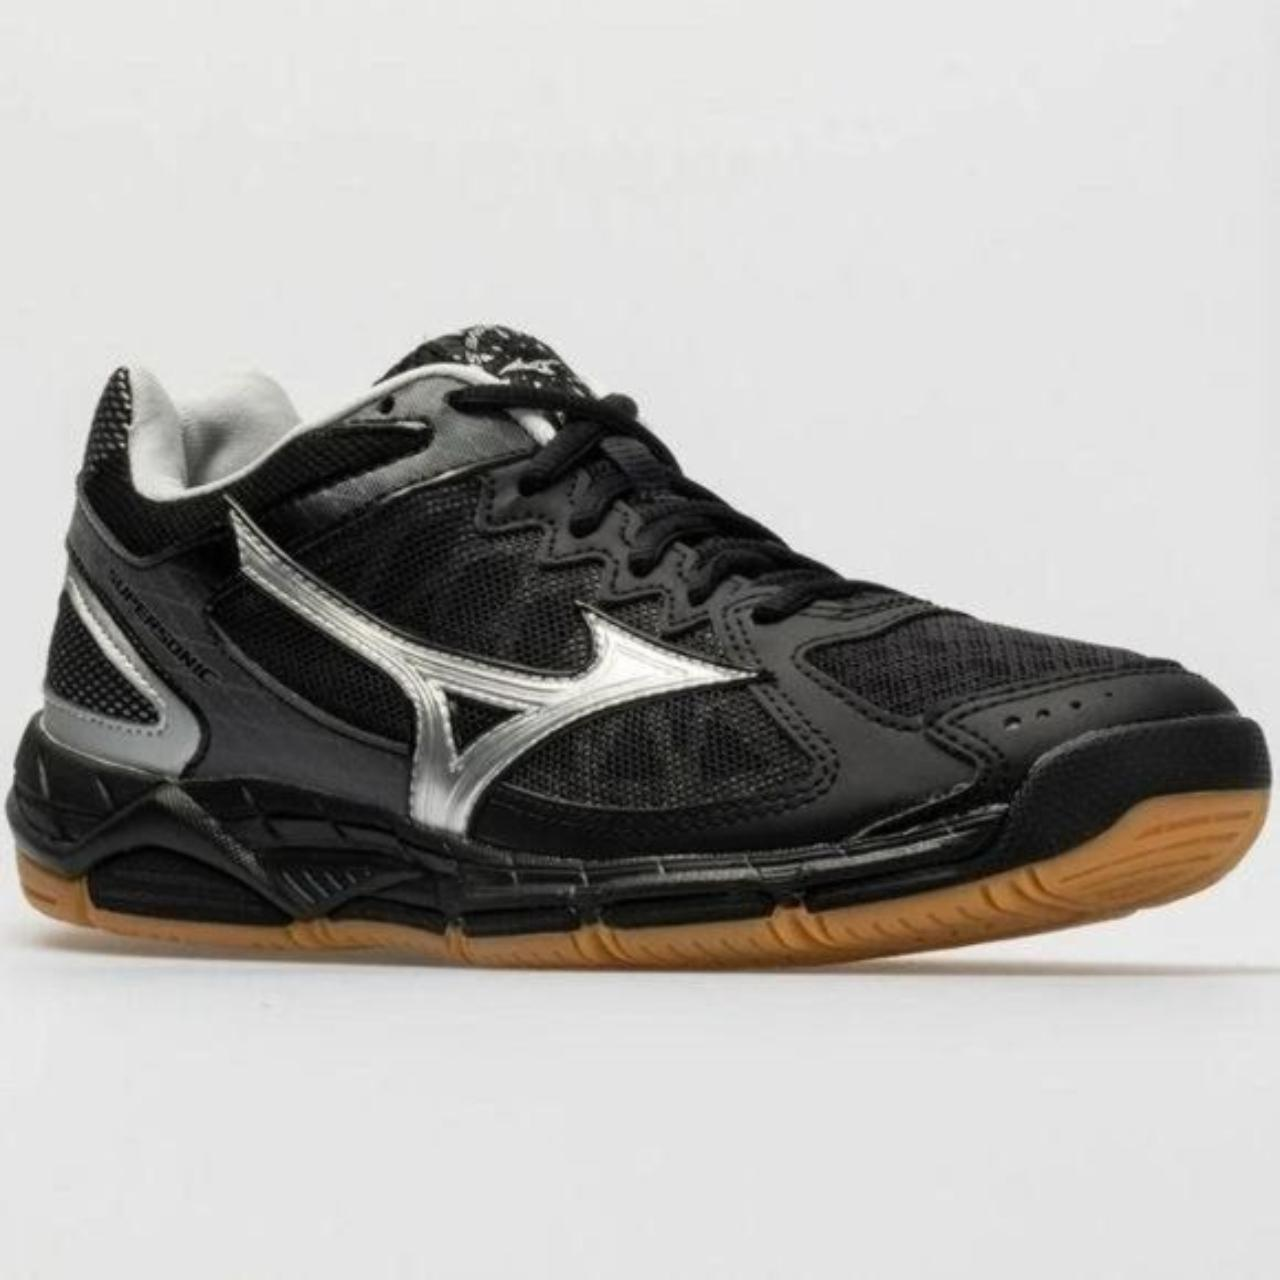 Product Image 1 - Mizuno Wave Supersonic Volleyball Shoes